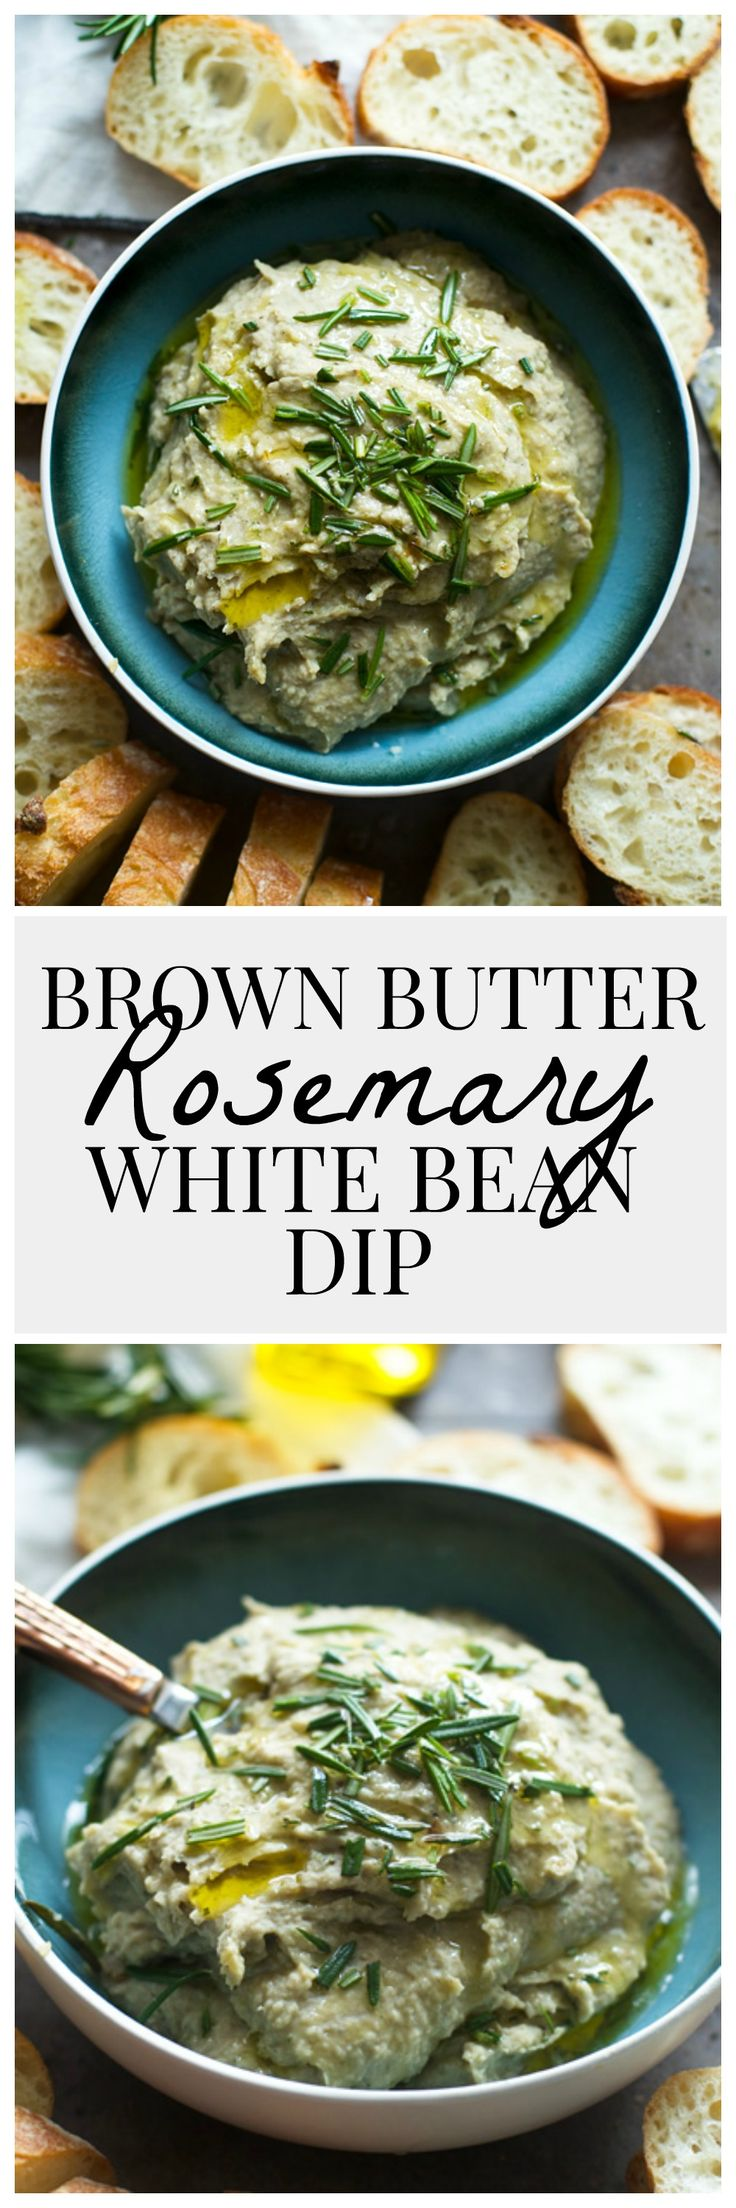 Brown Butter Rosemary White Bean Dip - Super, easy and minimal ingredients!